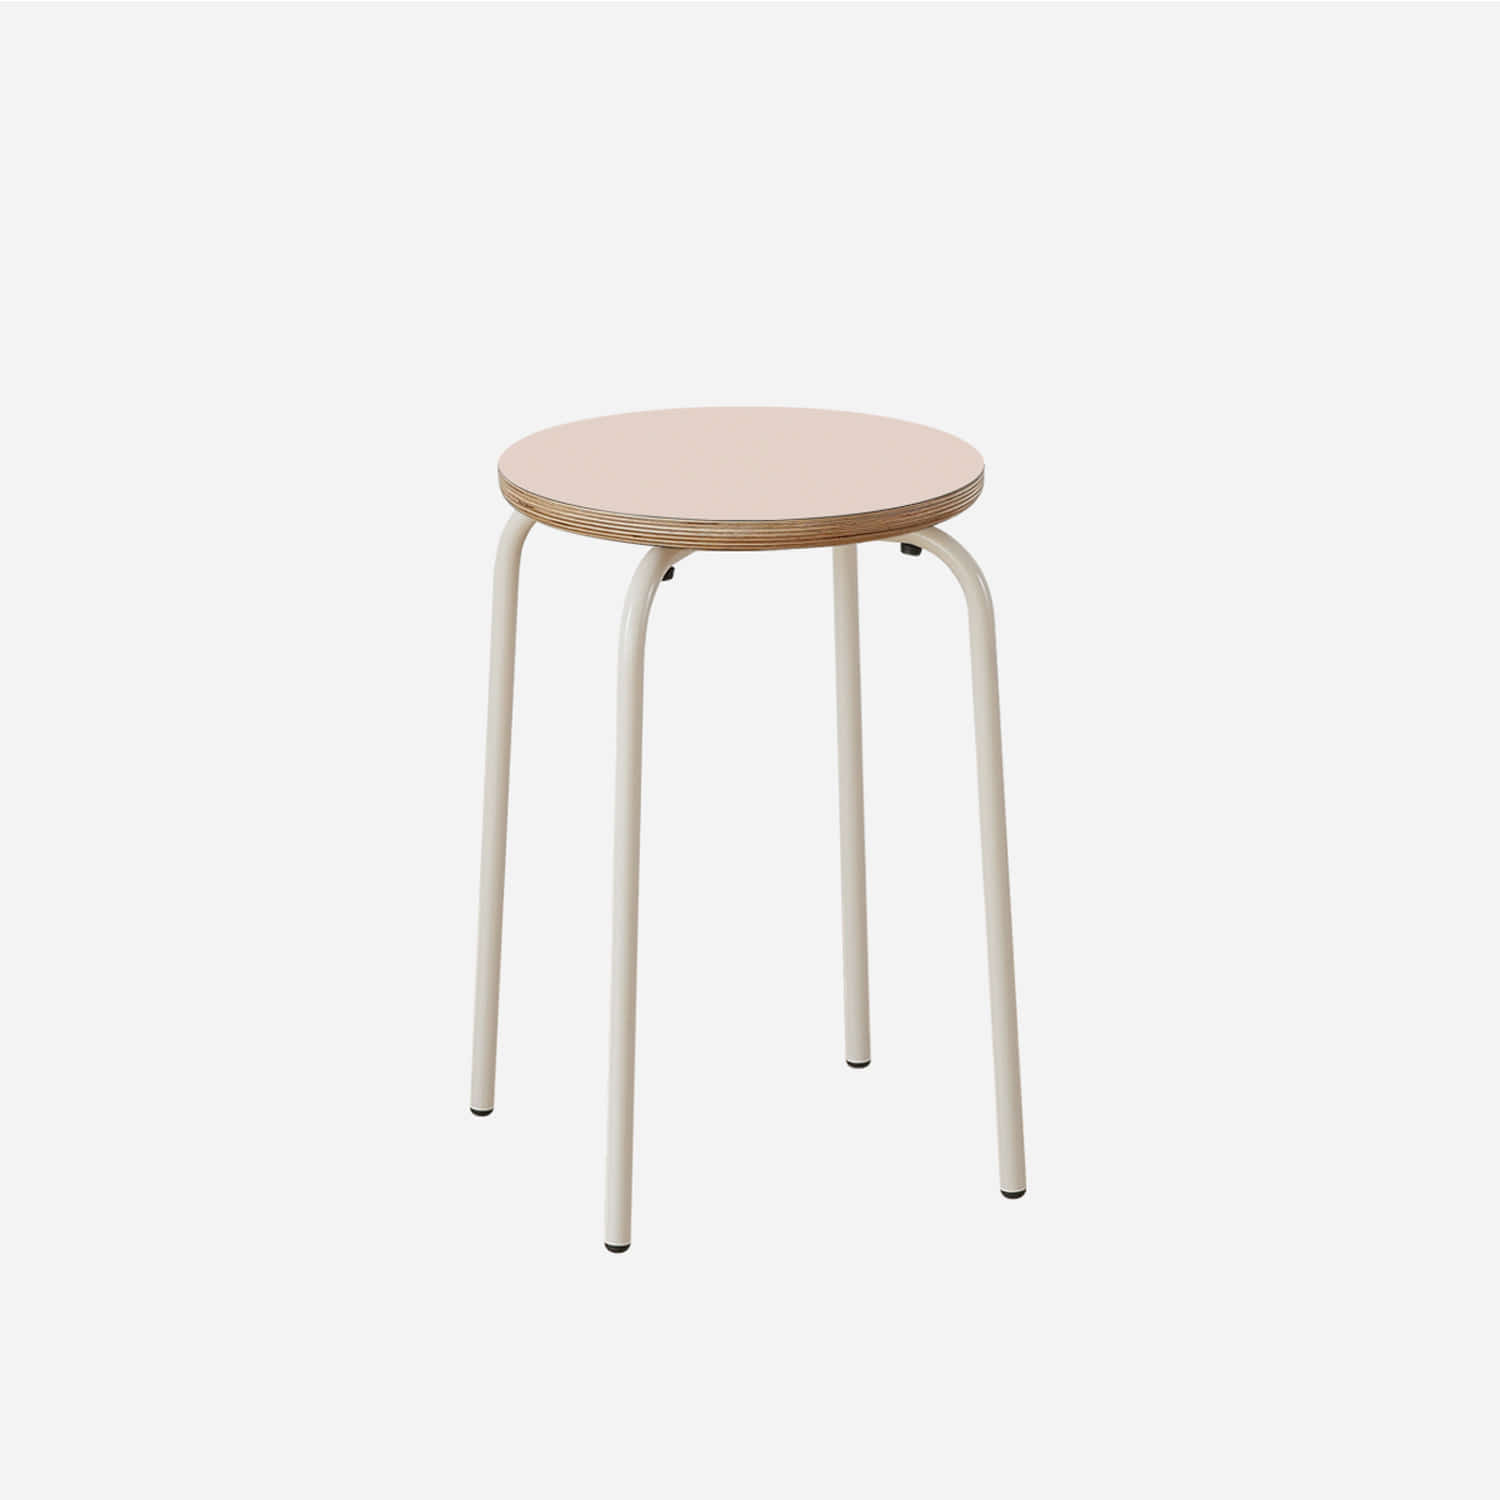 Lino Round Tube Stool